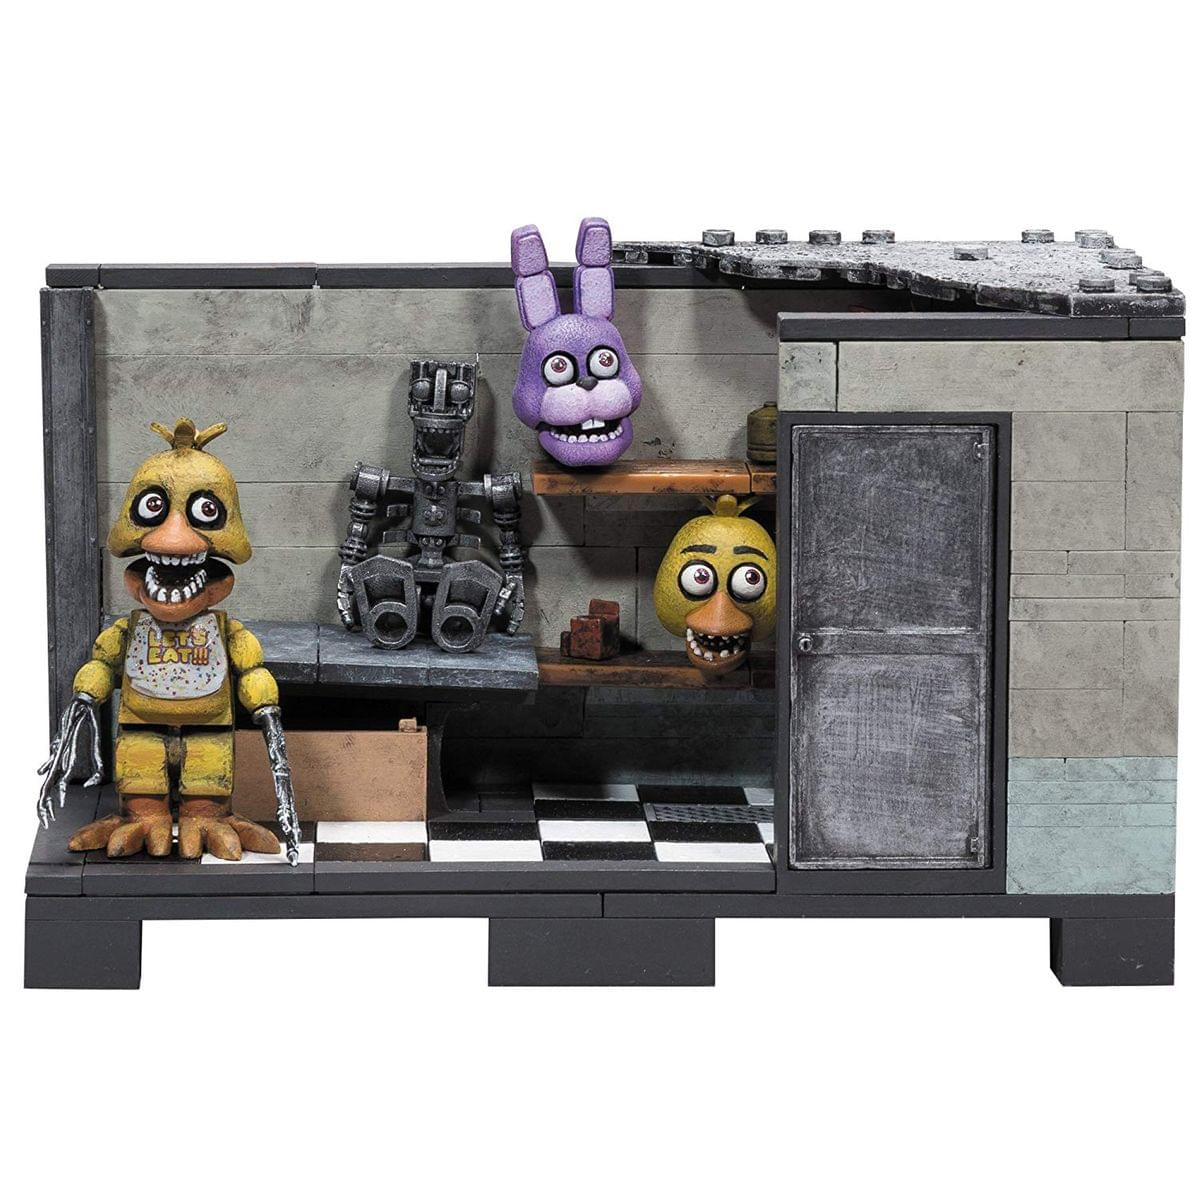 Five Nights At Freddy's Classic Series Backstage 153-Piece Medium Construction Set